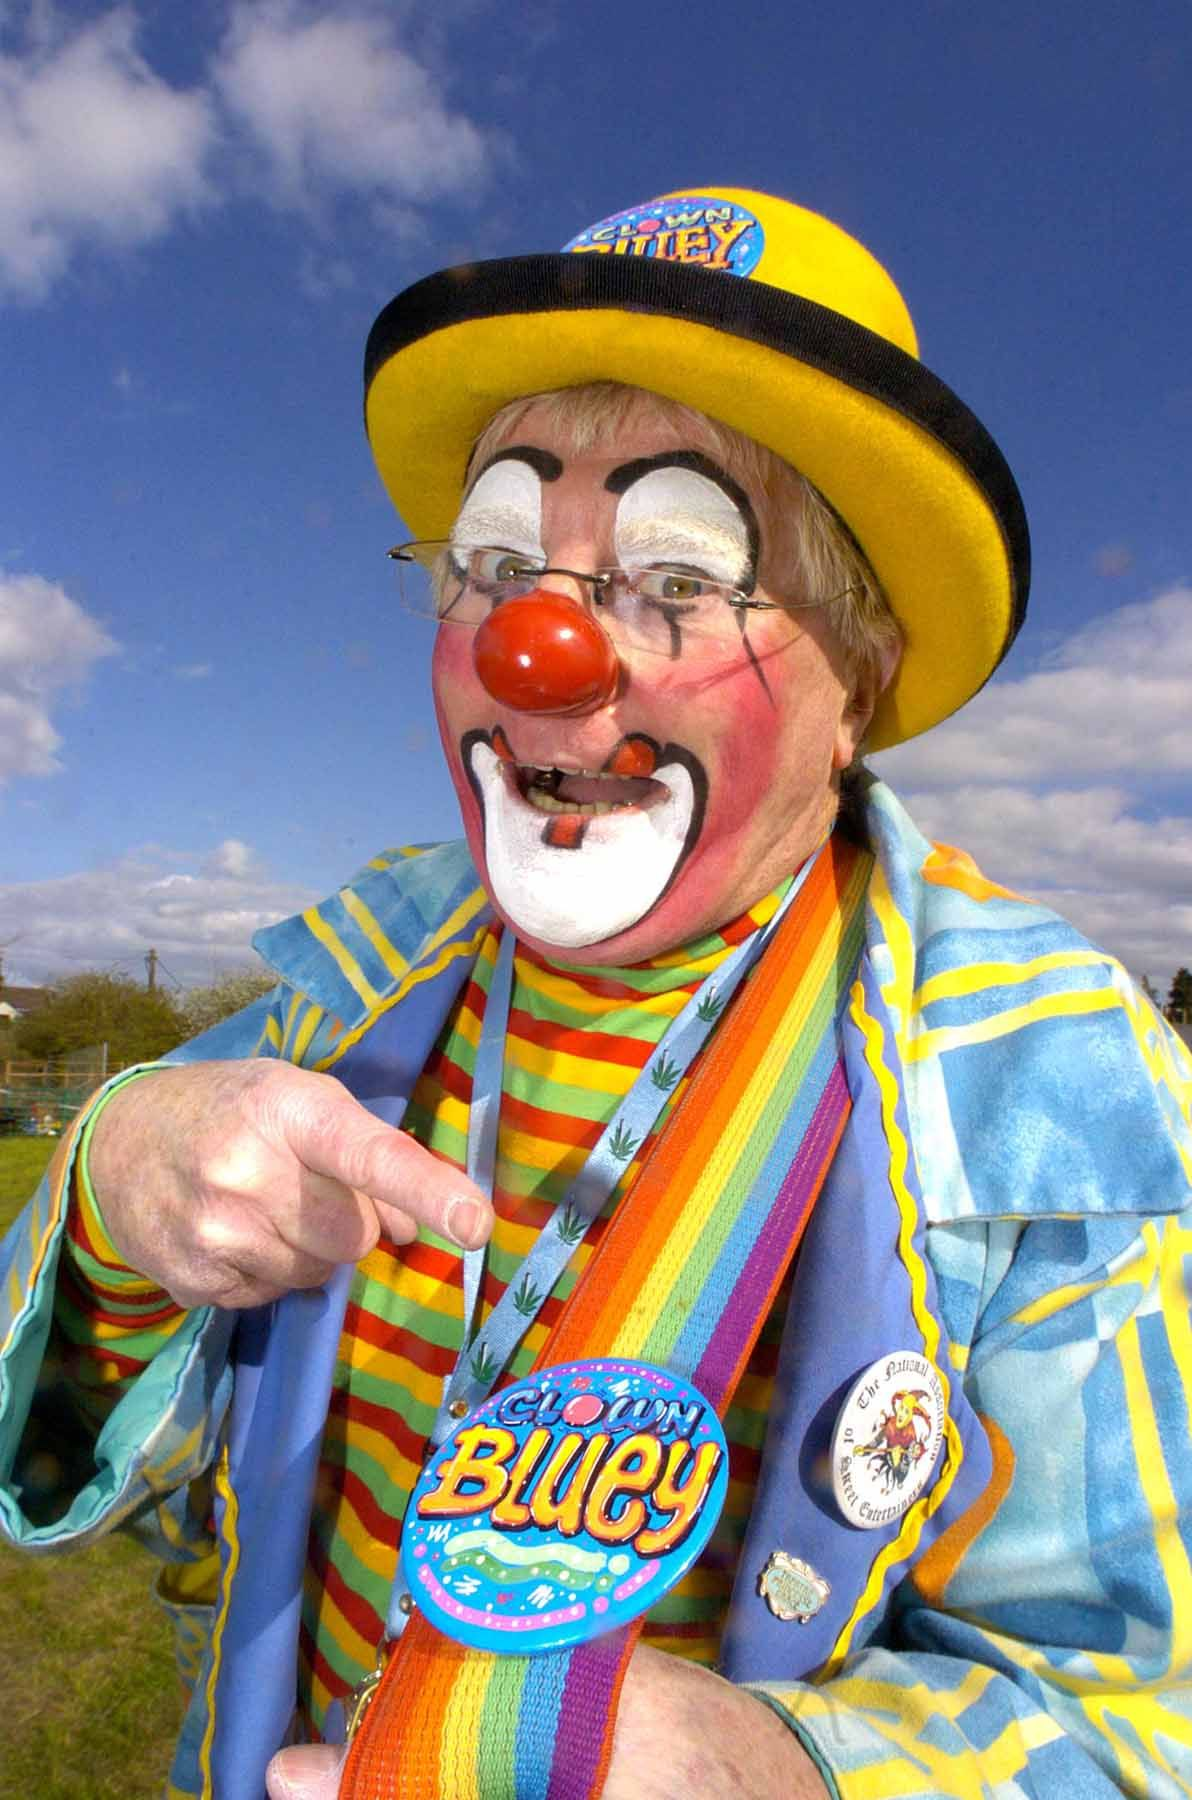 Circus Clowns To View Video Click Youtube Clown